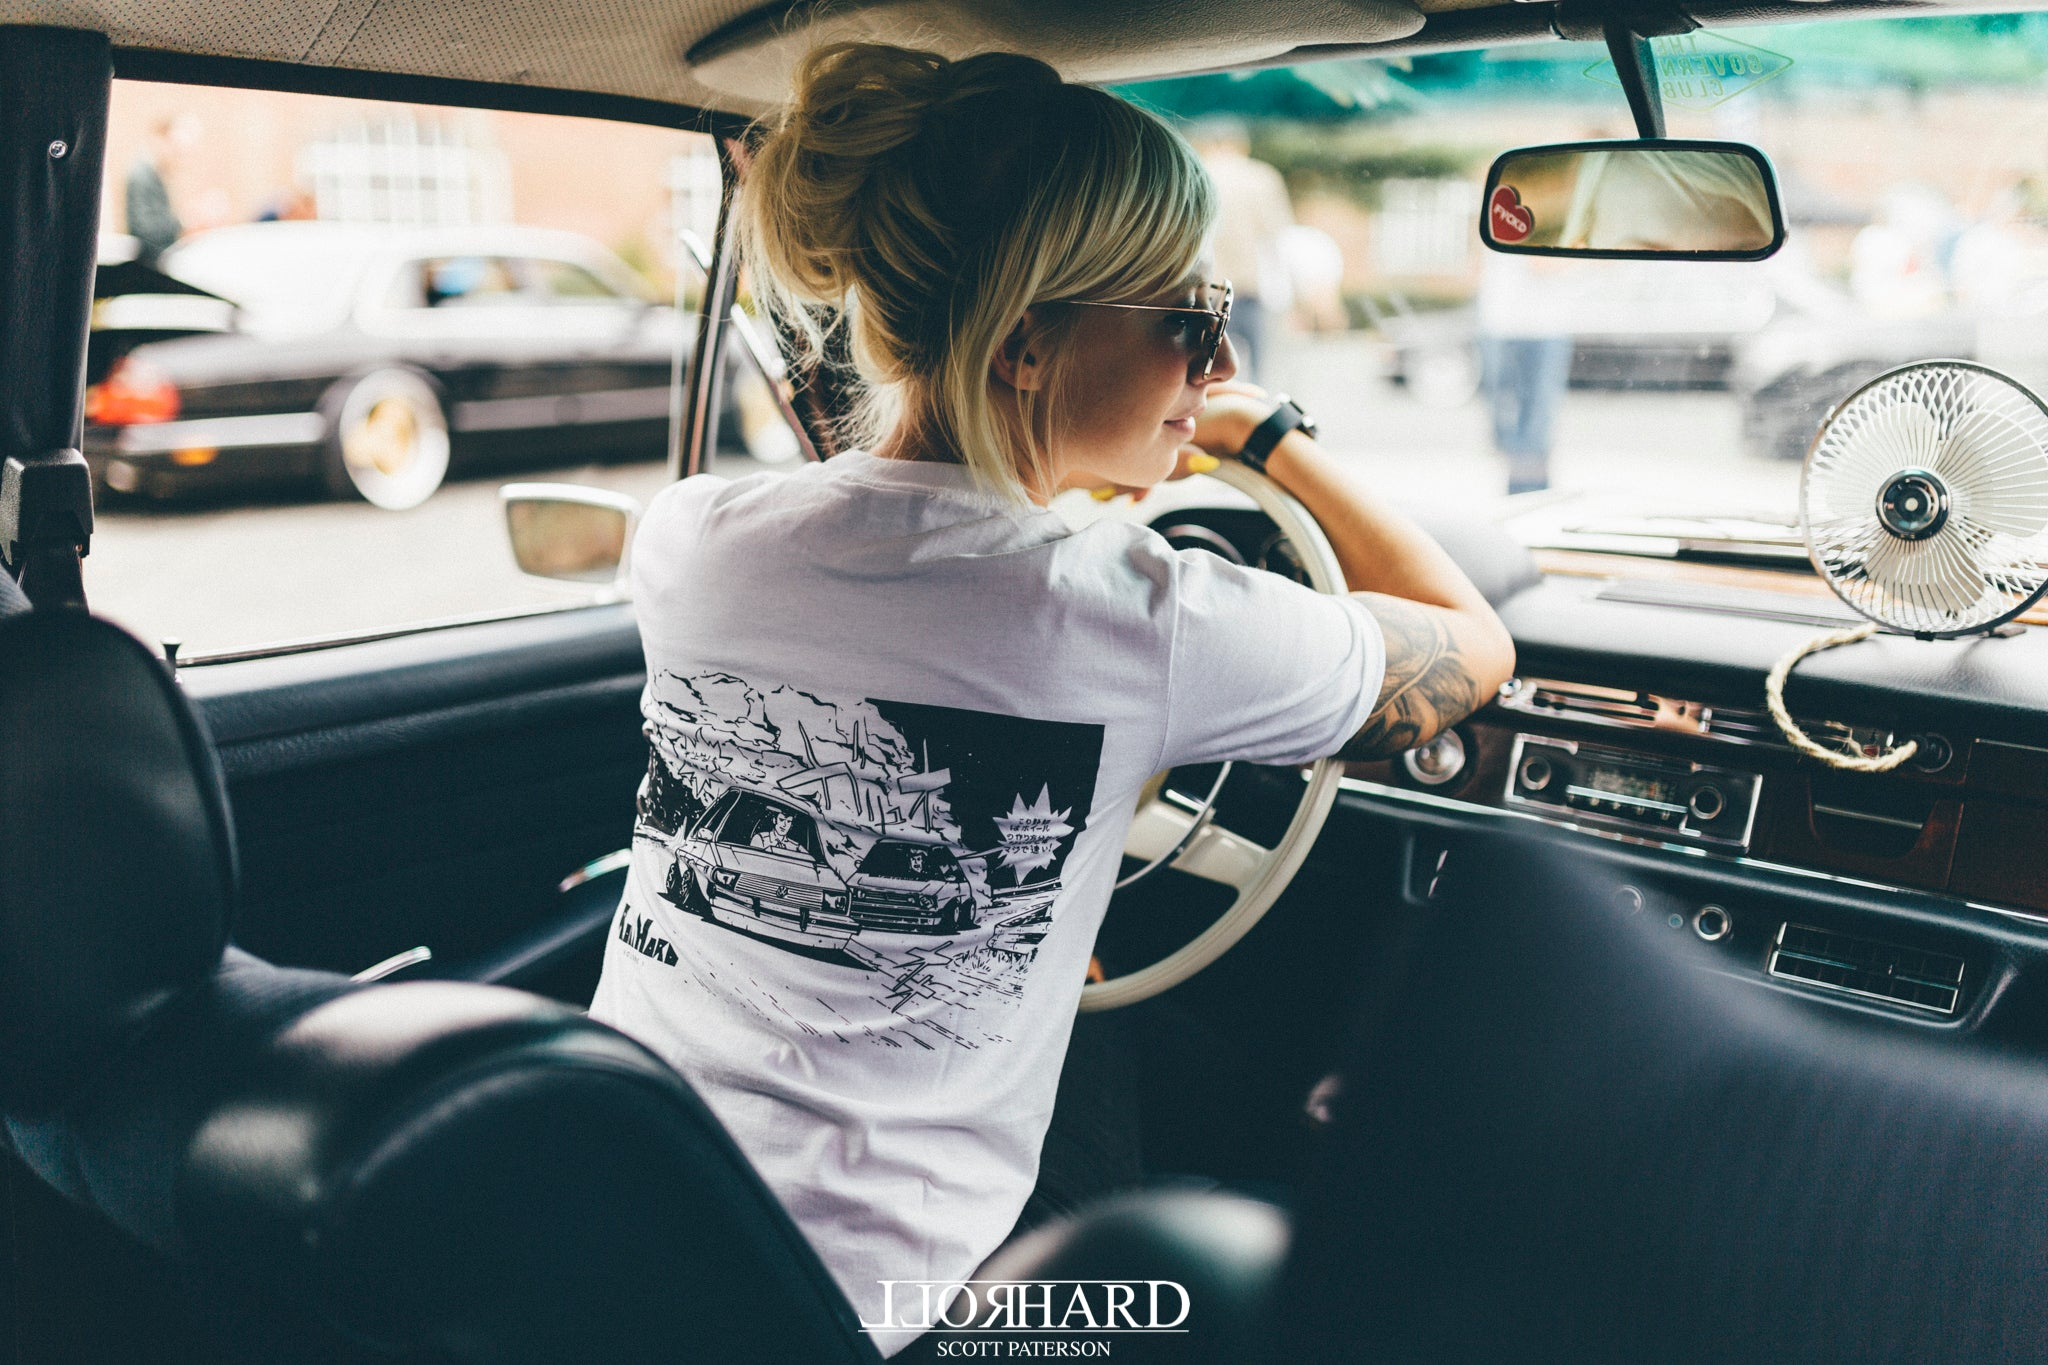 RollHard: The Parts Store. RollHard Clothing, RollHard Merch